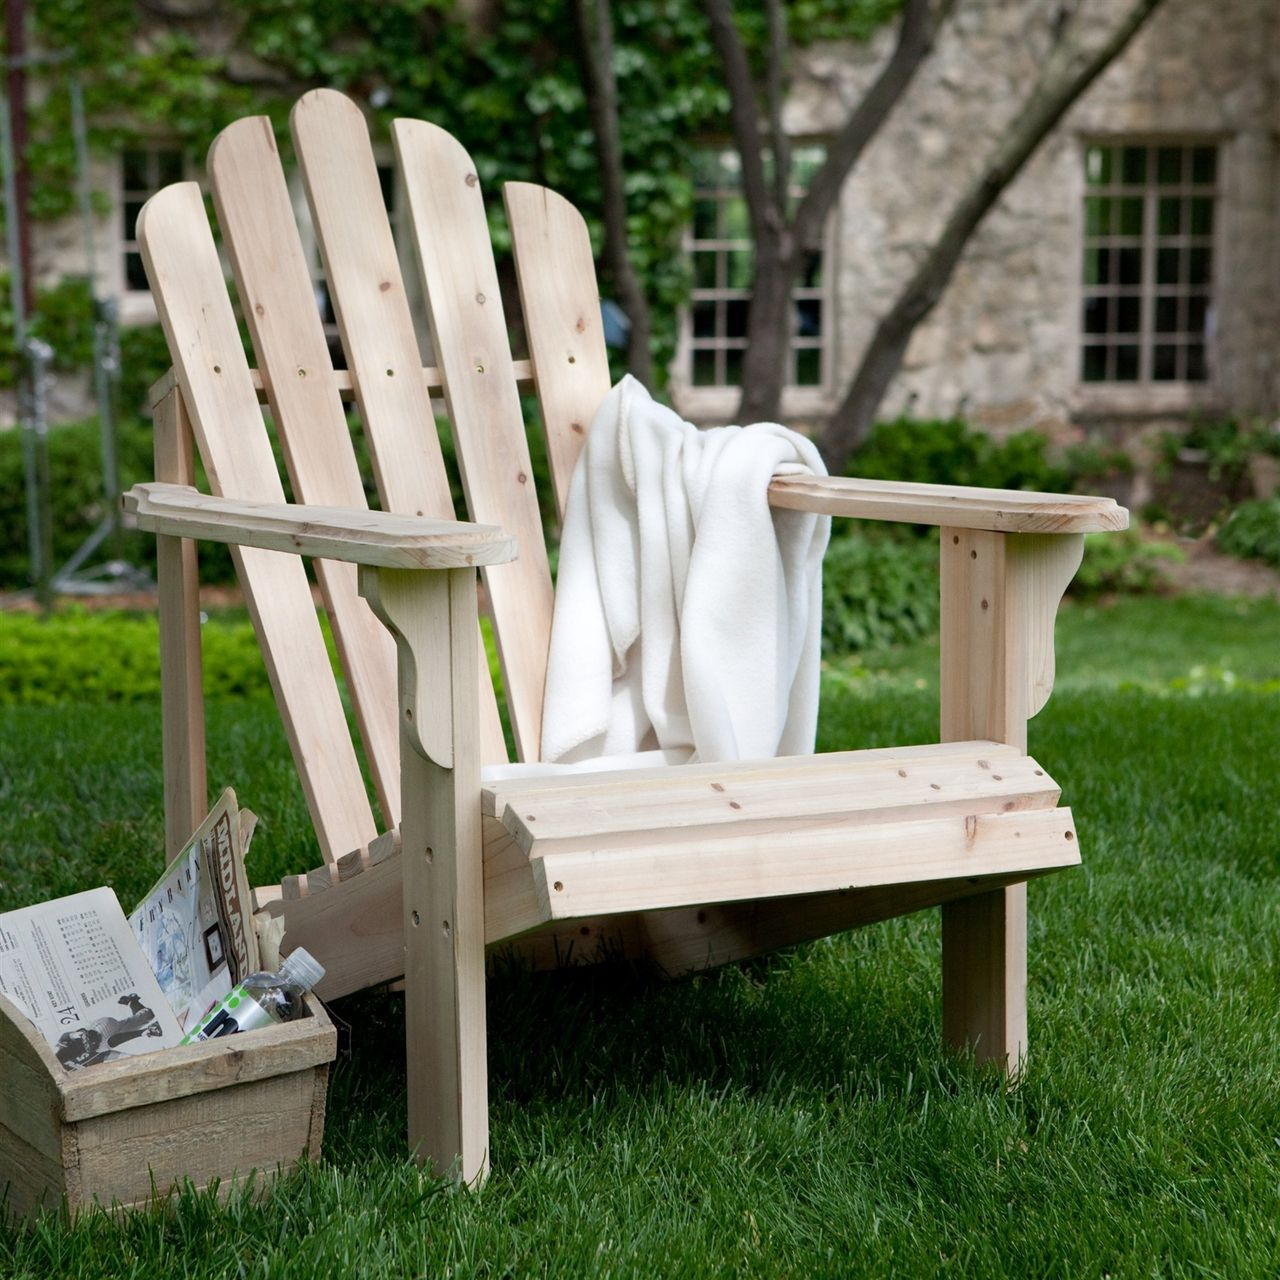 Unfinished Asian Fir Wood Adirondack Chair With Contoured Seat And Wide Armrests Quality House Wood Adirondack Chairs Wooden Adirondack Chairs Adirondack Chairs For Sale